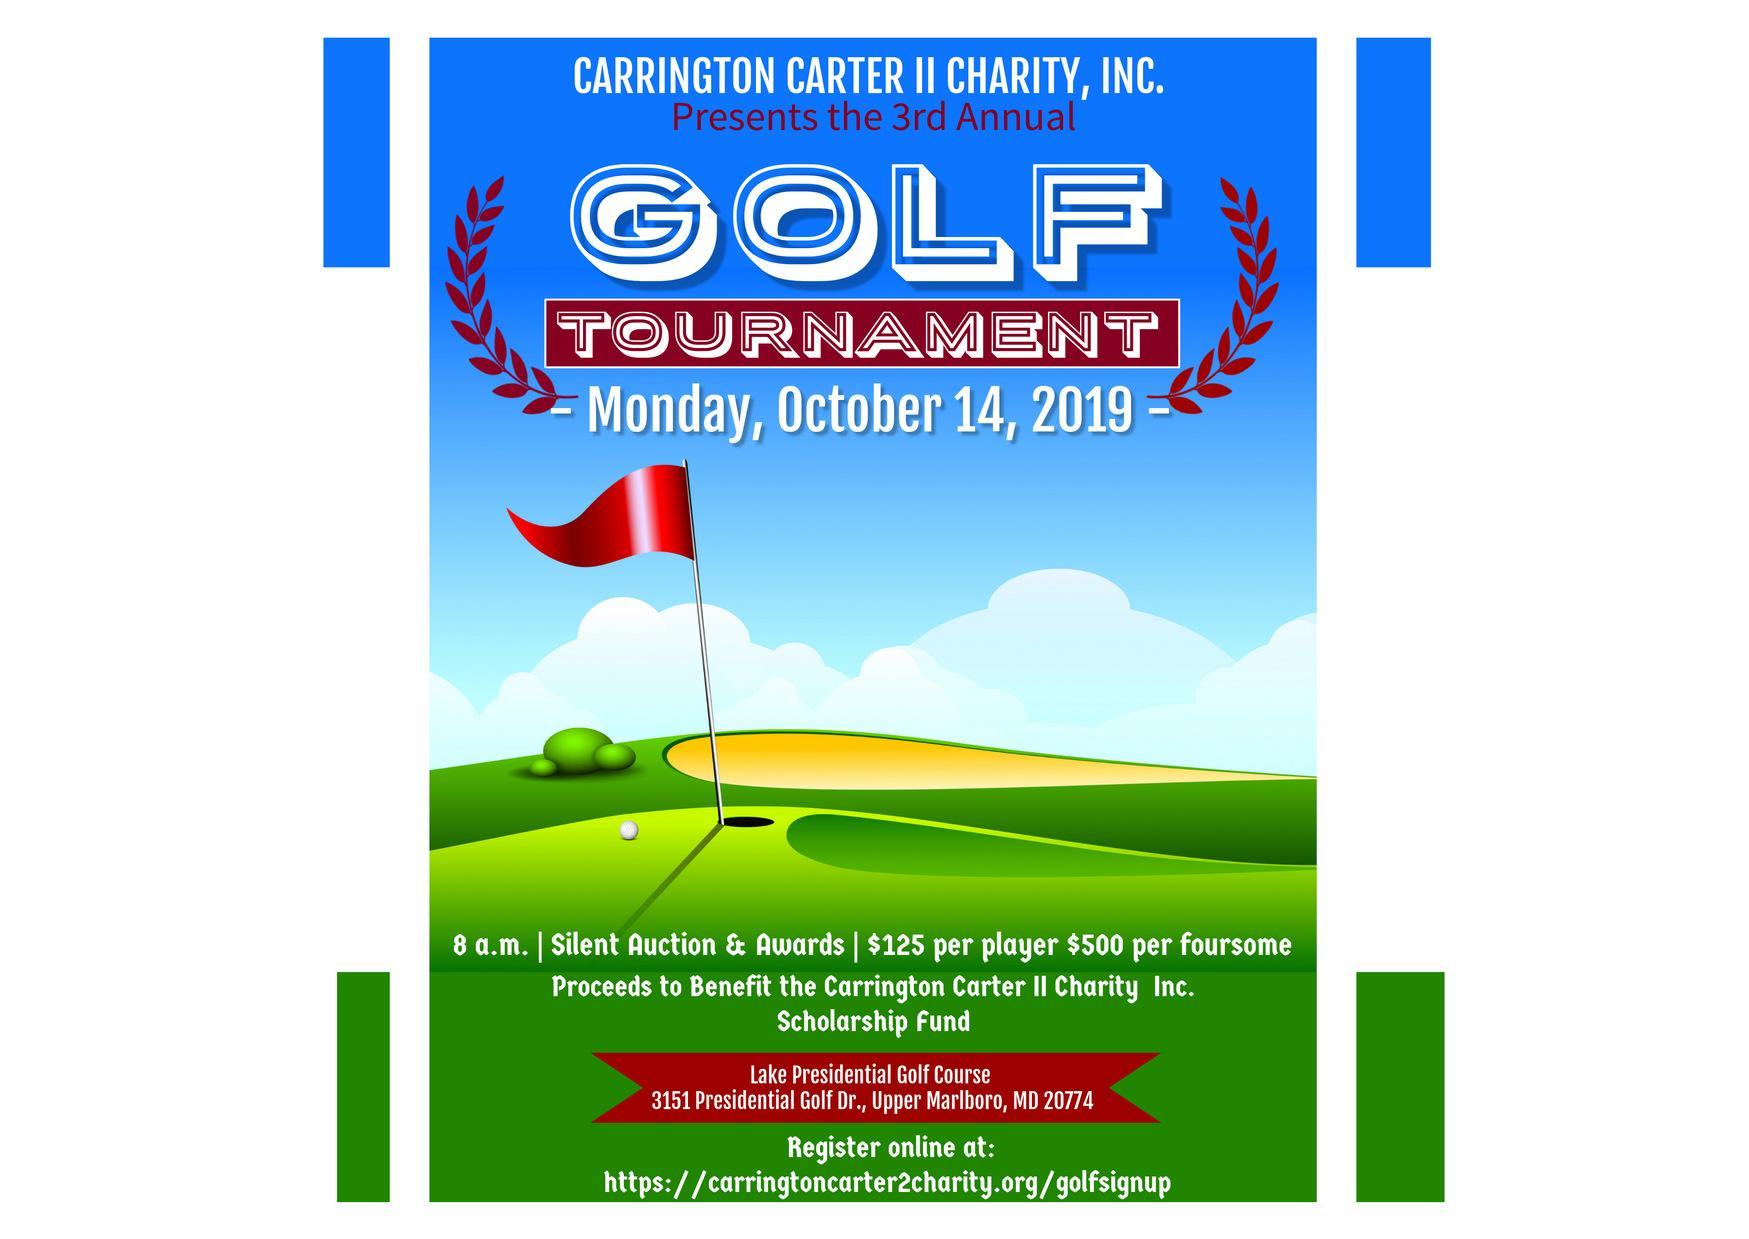 Carrington Carter II Charity, Inc. Third Annual Golf Tournament and Silent Auction